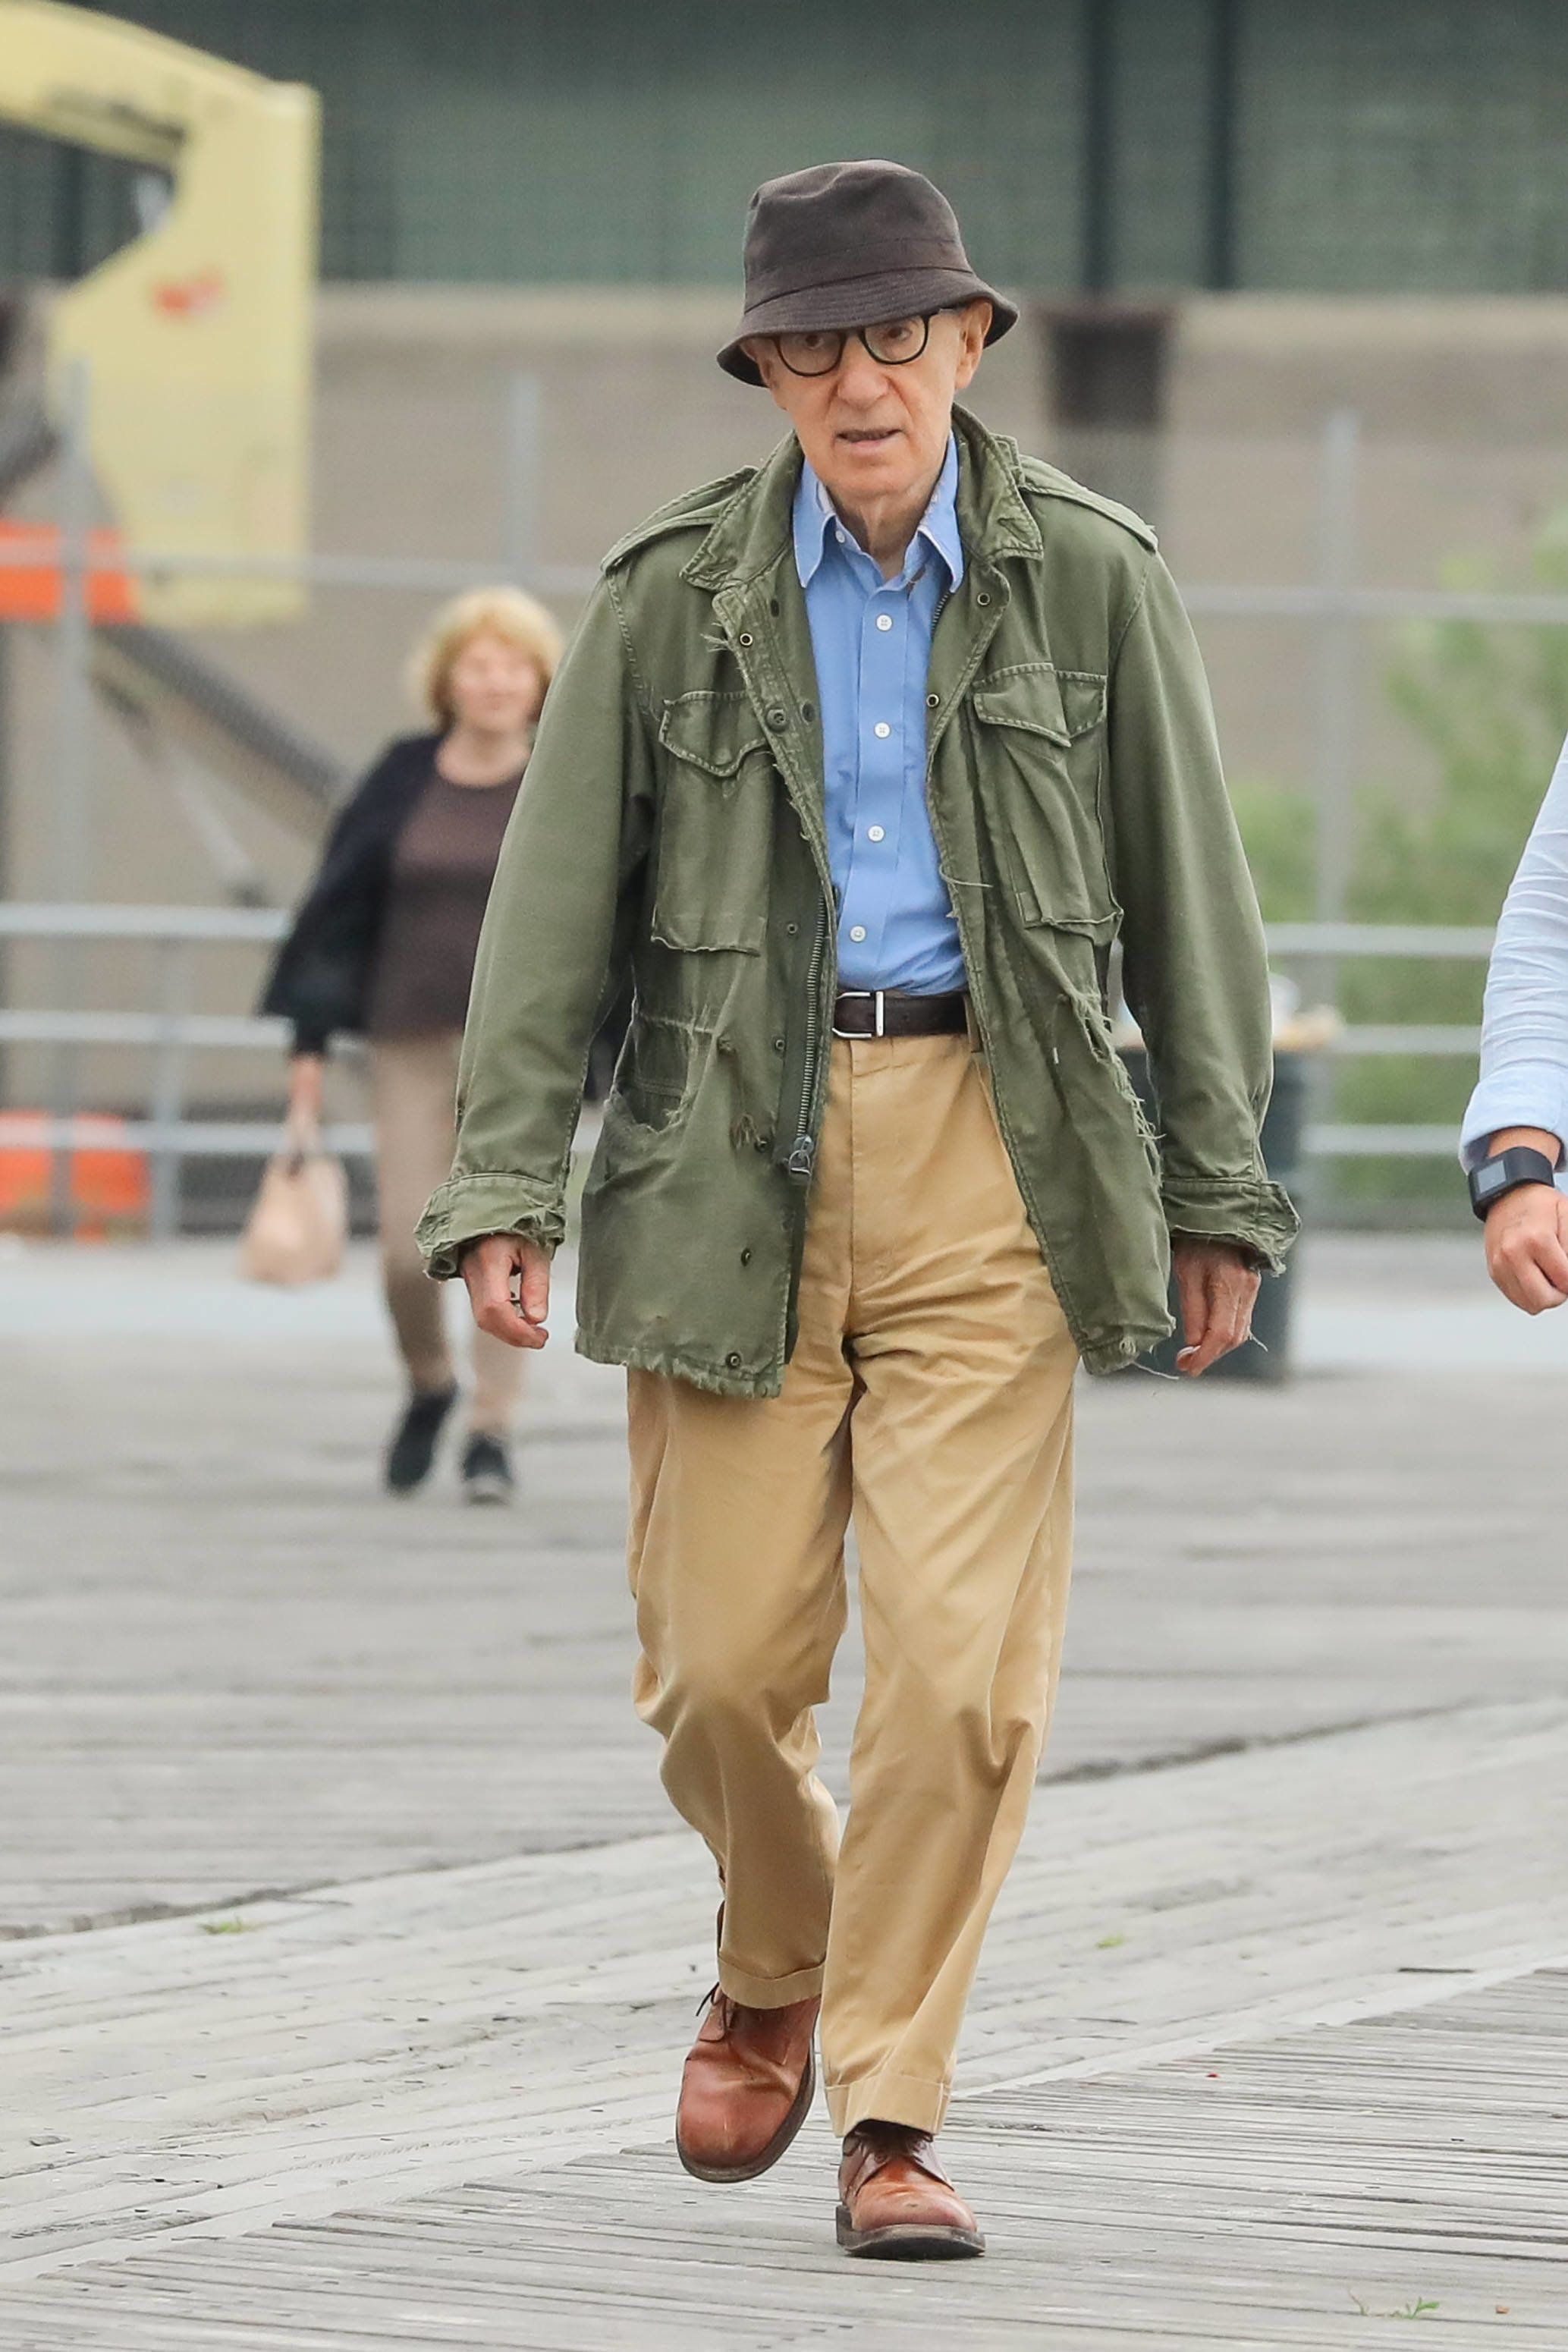 NEW YORK, NY - SEPTEMBER 20: Woody Allen is seen on filming September 20, 2016 in New York City.  (Photo by Ignat/Bauer-Griffin/GC Images)